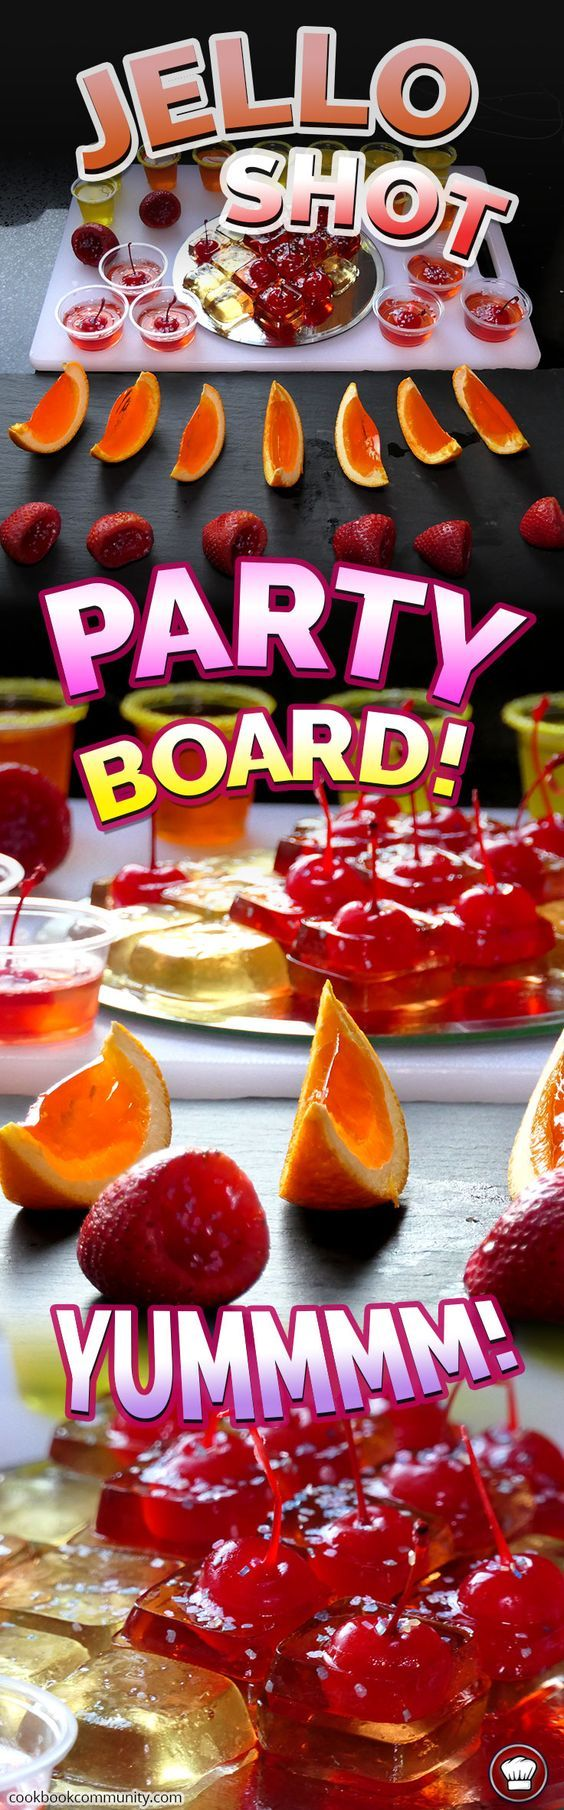 JELLO SHOTS PARTY BOARD - All the best Jello Shot recipes in a beautiful spread for your guests!